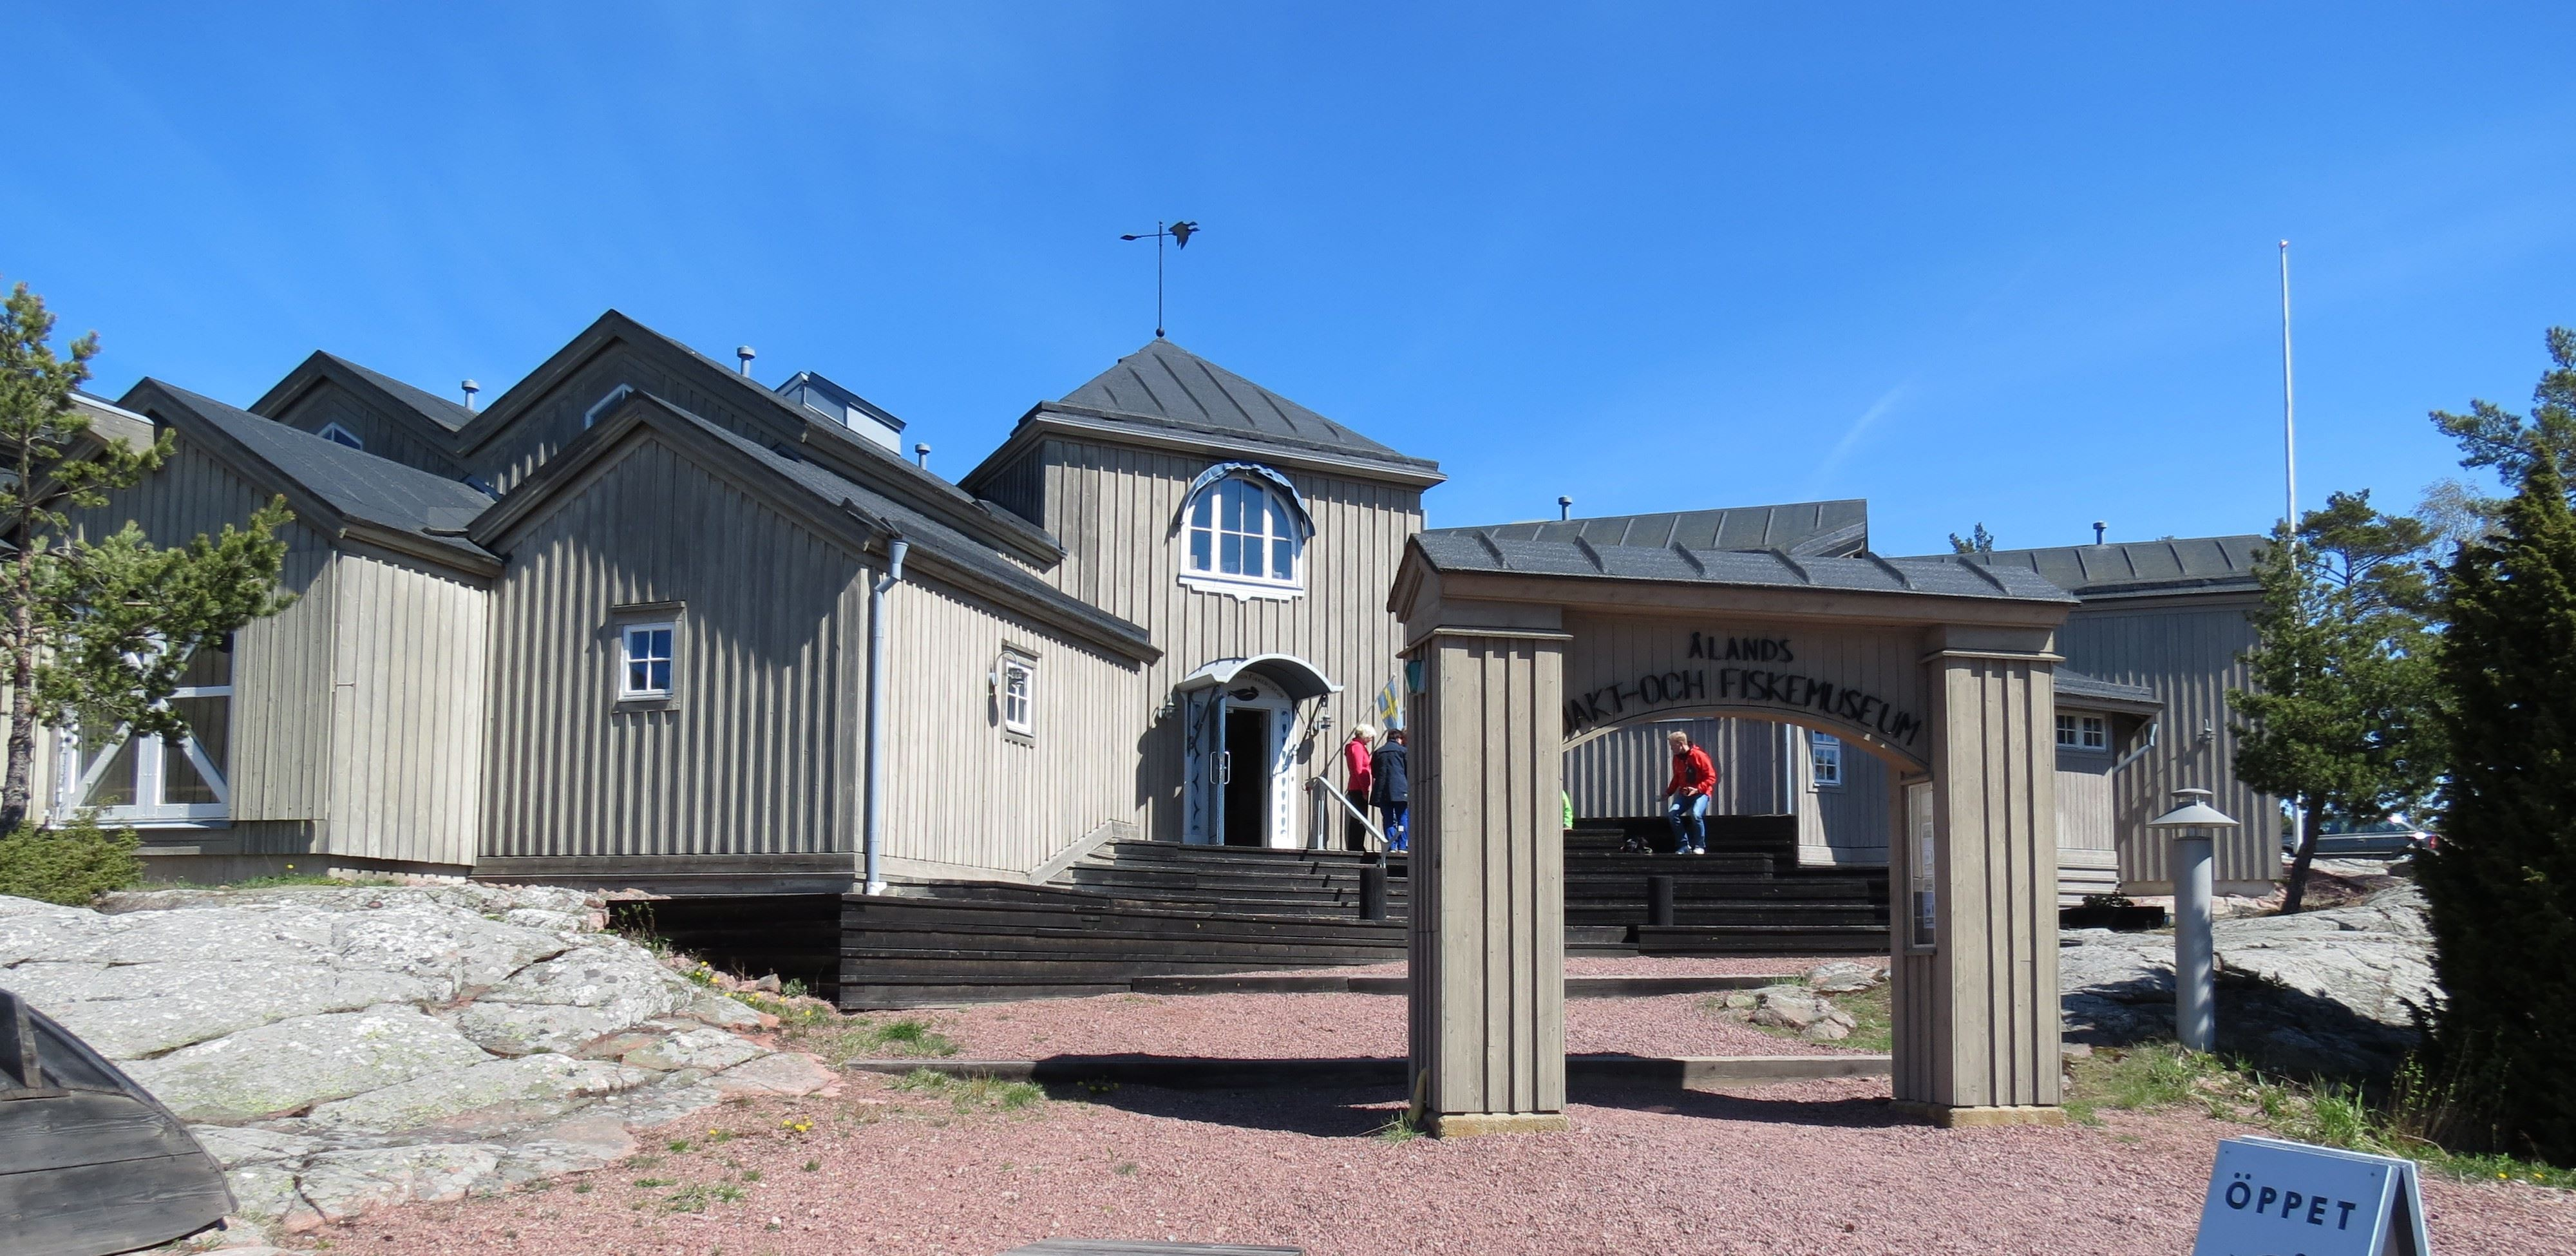 Entrance fee fo the Åland Hunting and Fishing museum